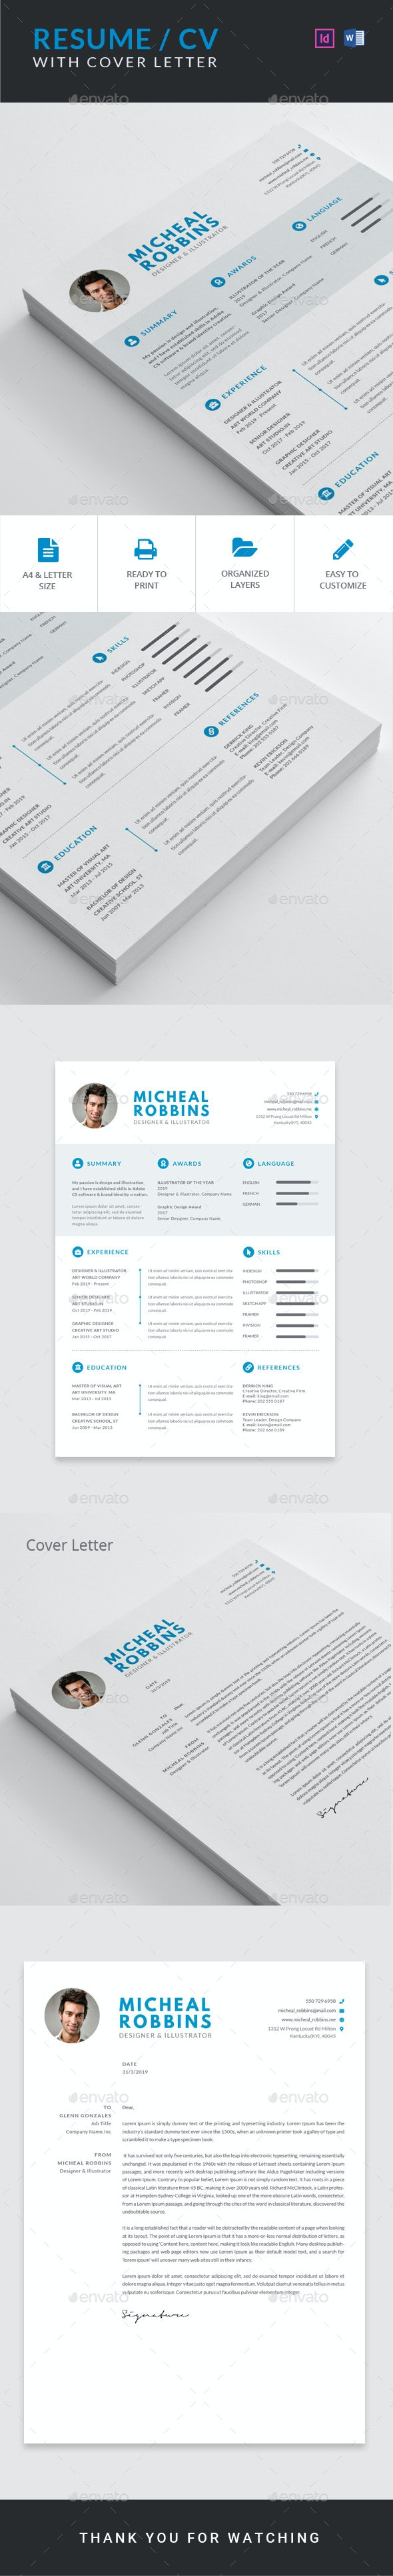 Resume / CV with Cover Letter - Resumes Stationery